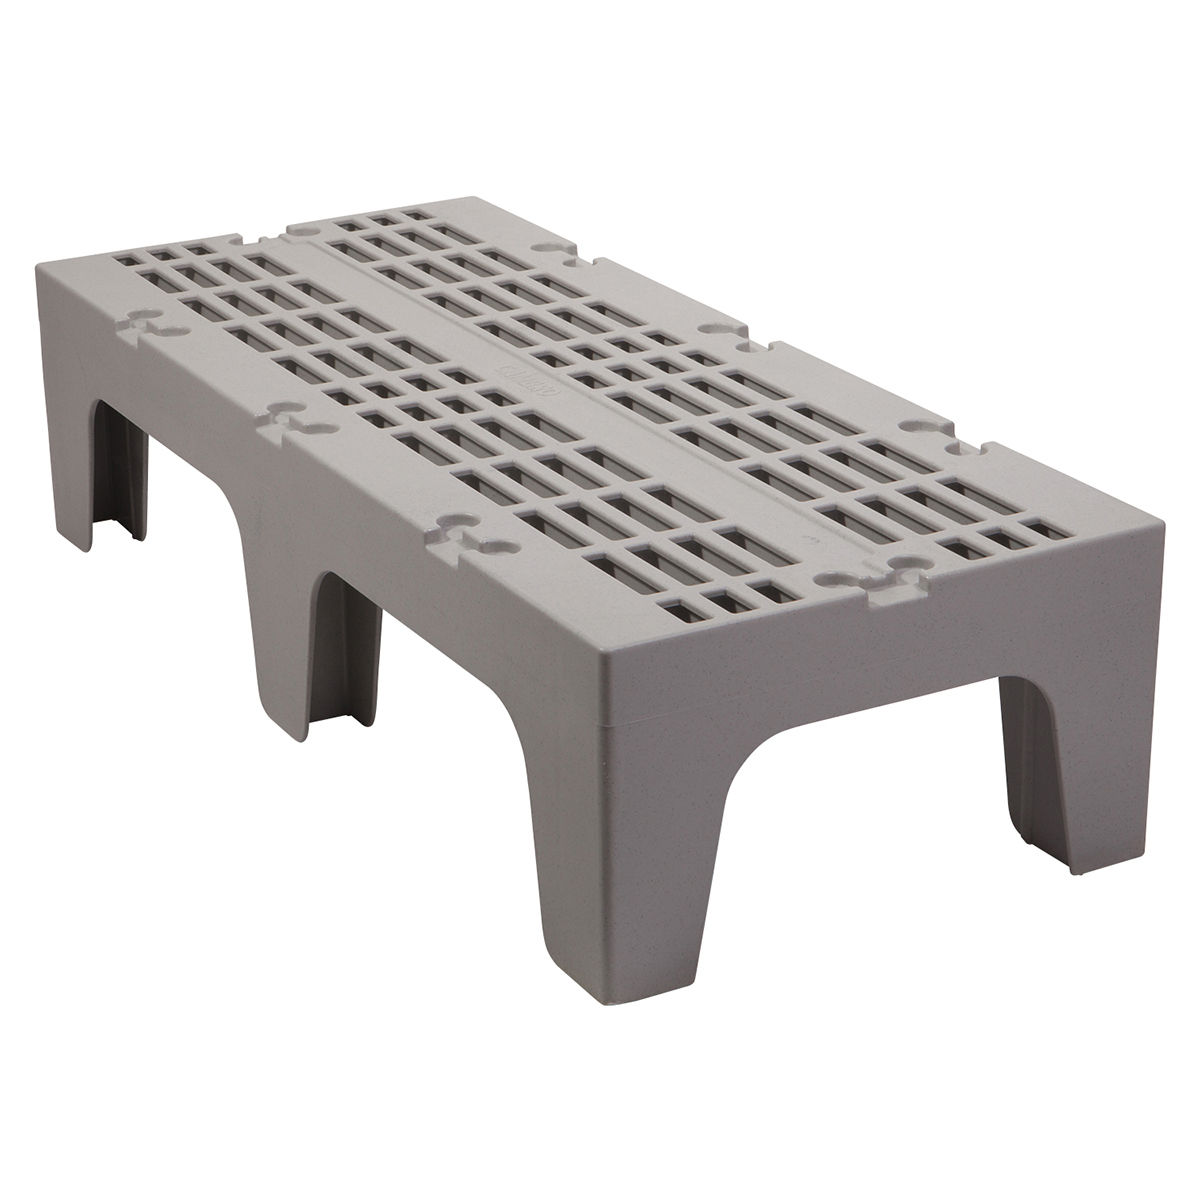 1220 mm wide dunnage rack